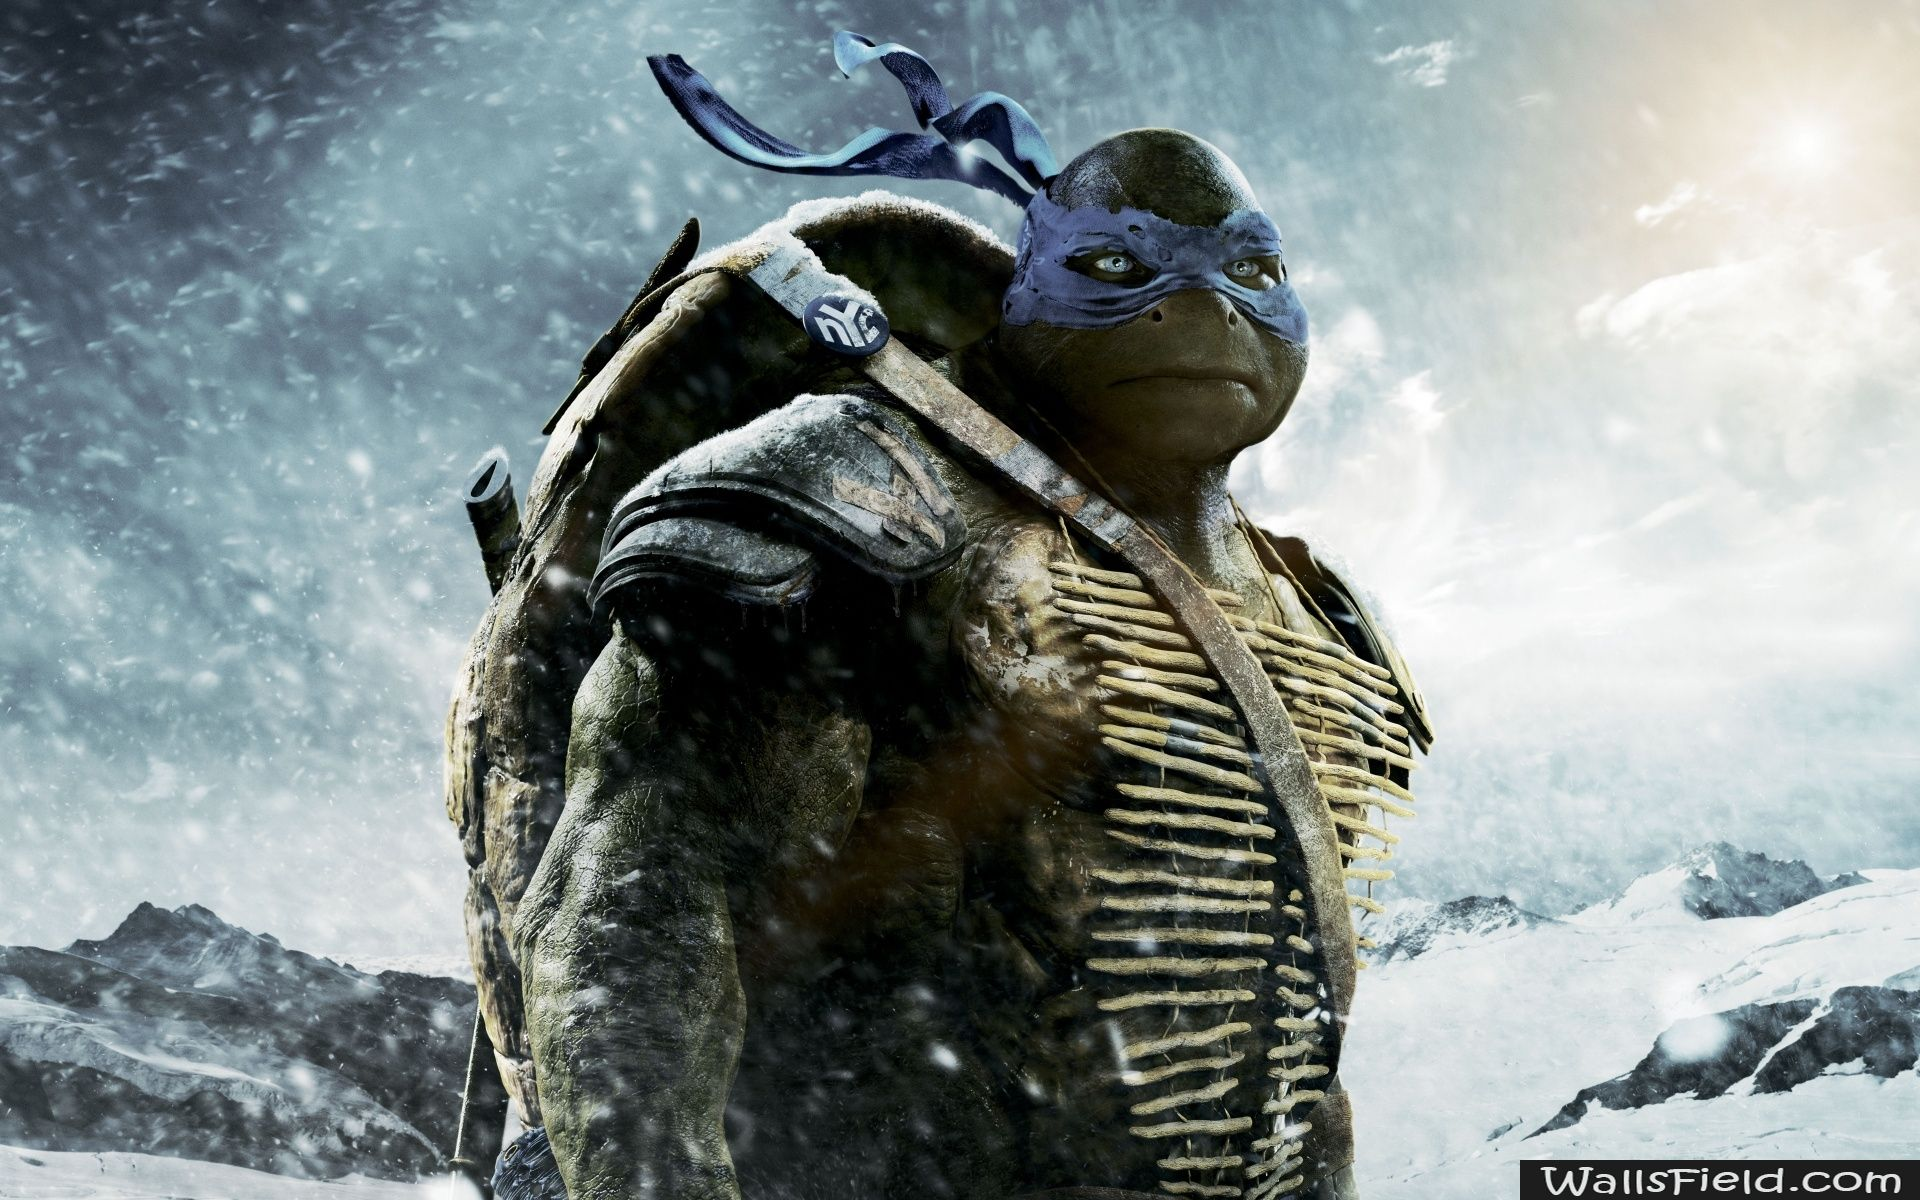 You can view download and comment on leonardo teenage mutant you can view download and comment on leonardo teenage mutant ninja turtles free hd voltagebd Images